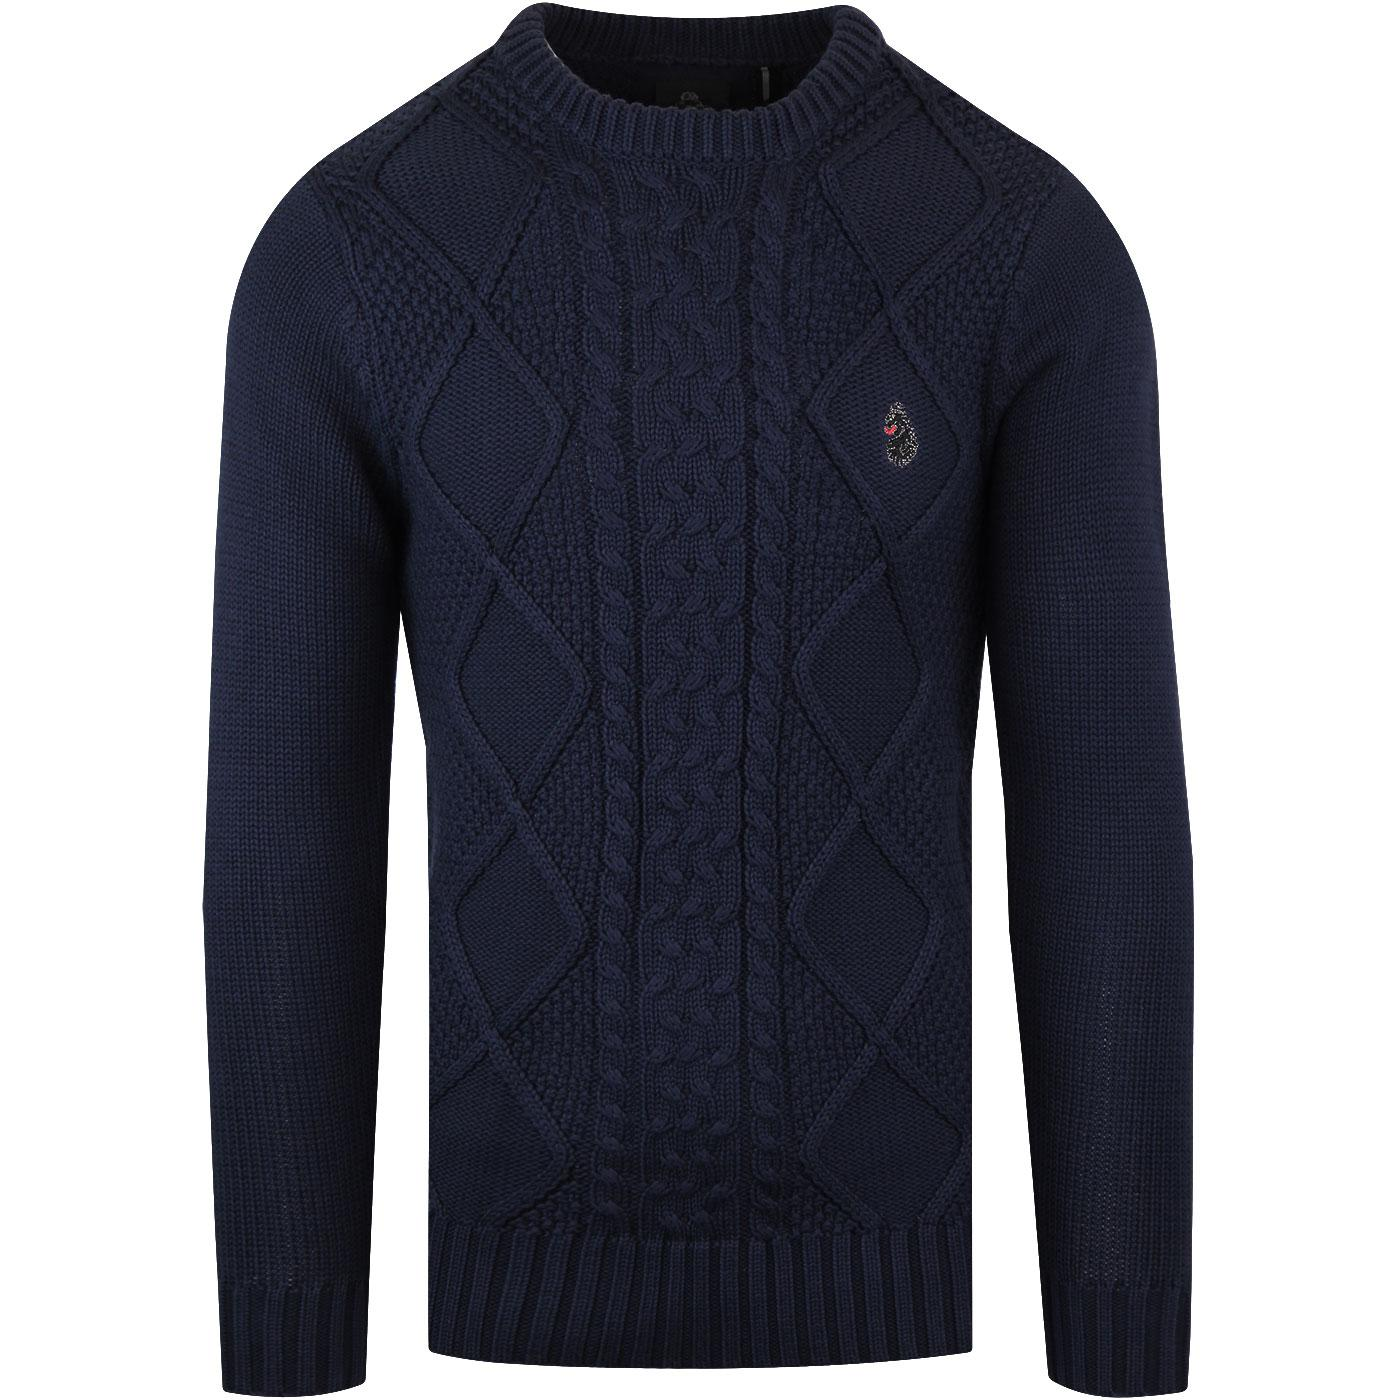 Horton Court LUKE 1977 Cable Fishermans Jumper N